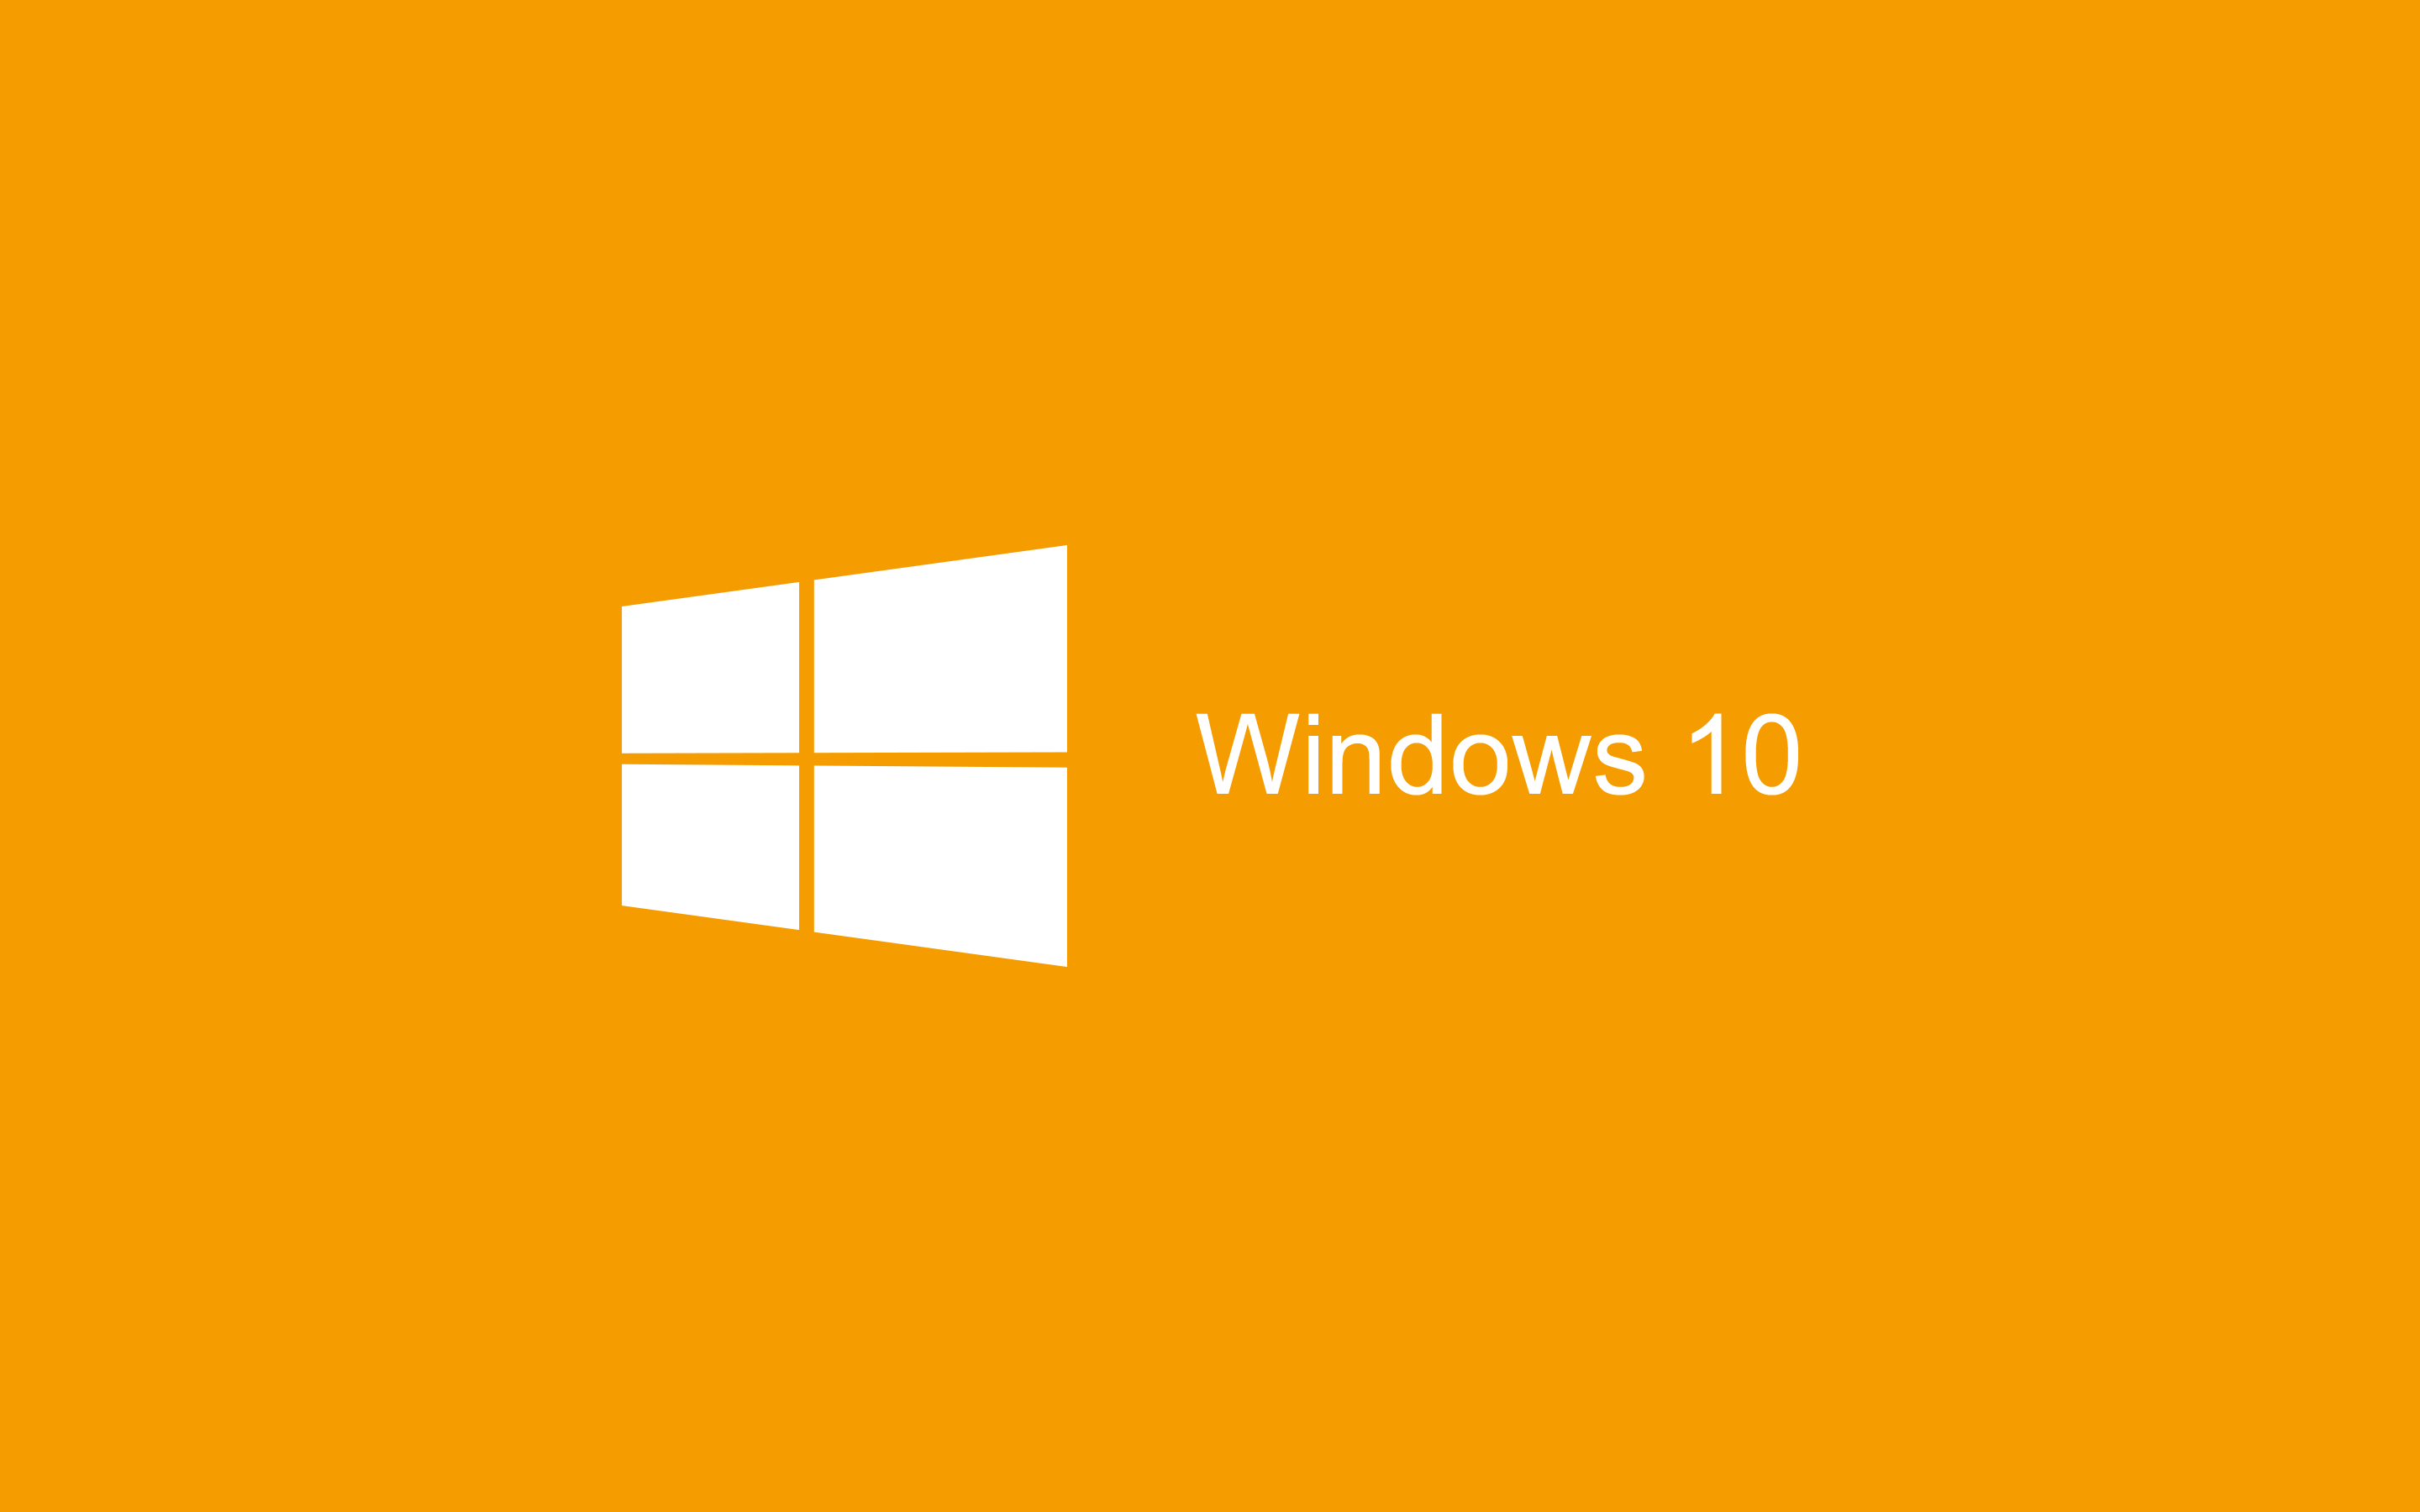 Wallpaper Windows 10 HD Pale